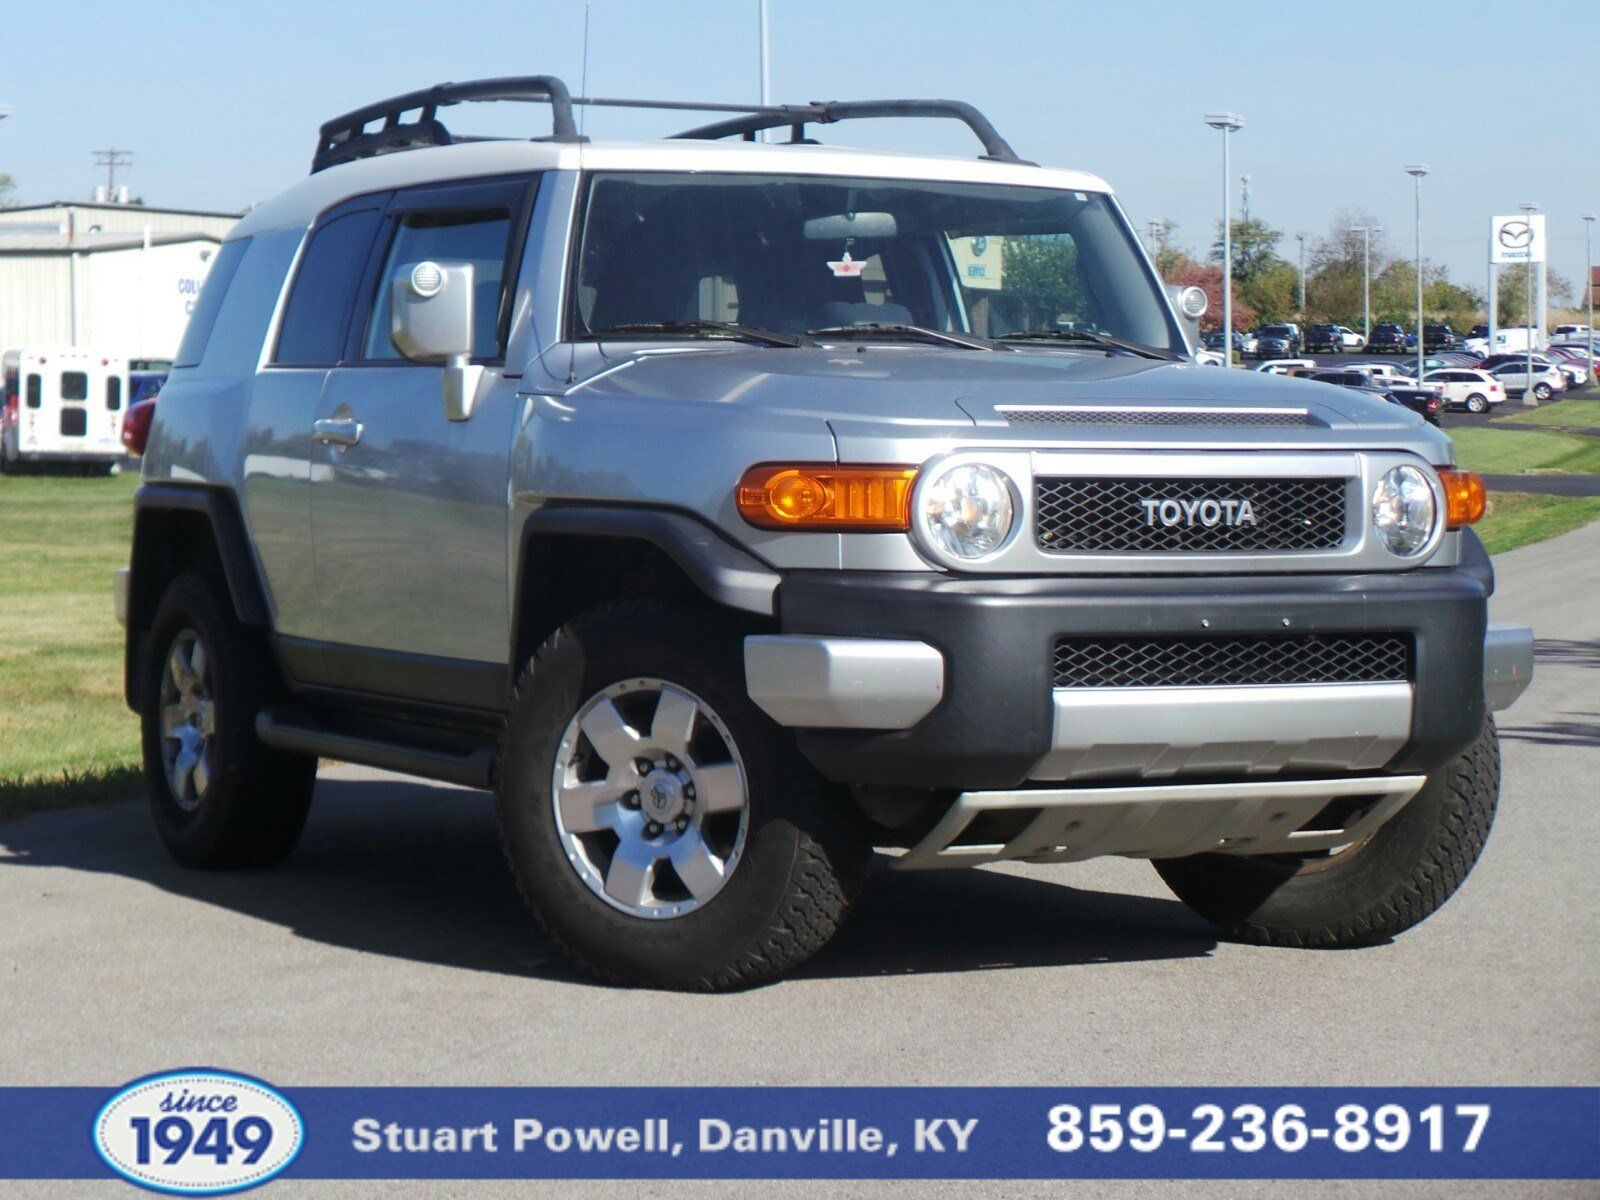 Looking for a used Toyota FJ Cruiser?  This one – located in Danville Kentucky – is priced $1,272 below market average!  Automatic, roof rack, easy-access full-size spare, rear hitch, all-weather mats, Dark Charcoal interior, new battery, premium sound system, adaptive brake assist.  Call 859-236-8917 to confirm availability and schedule a hassle free test drive!